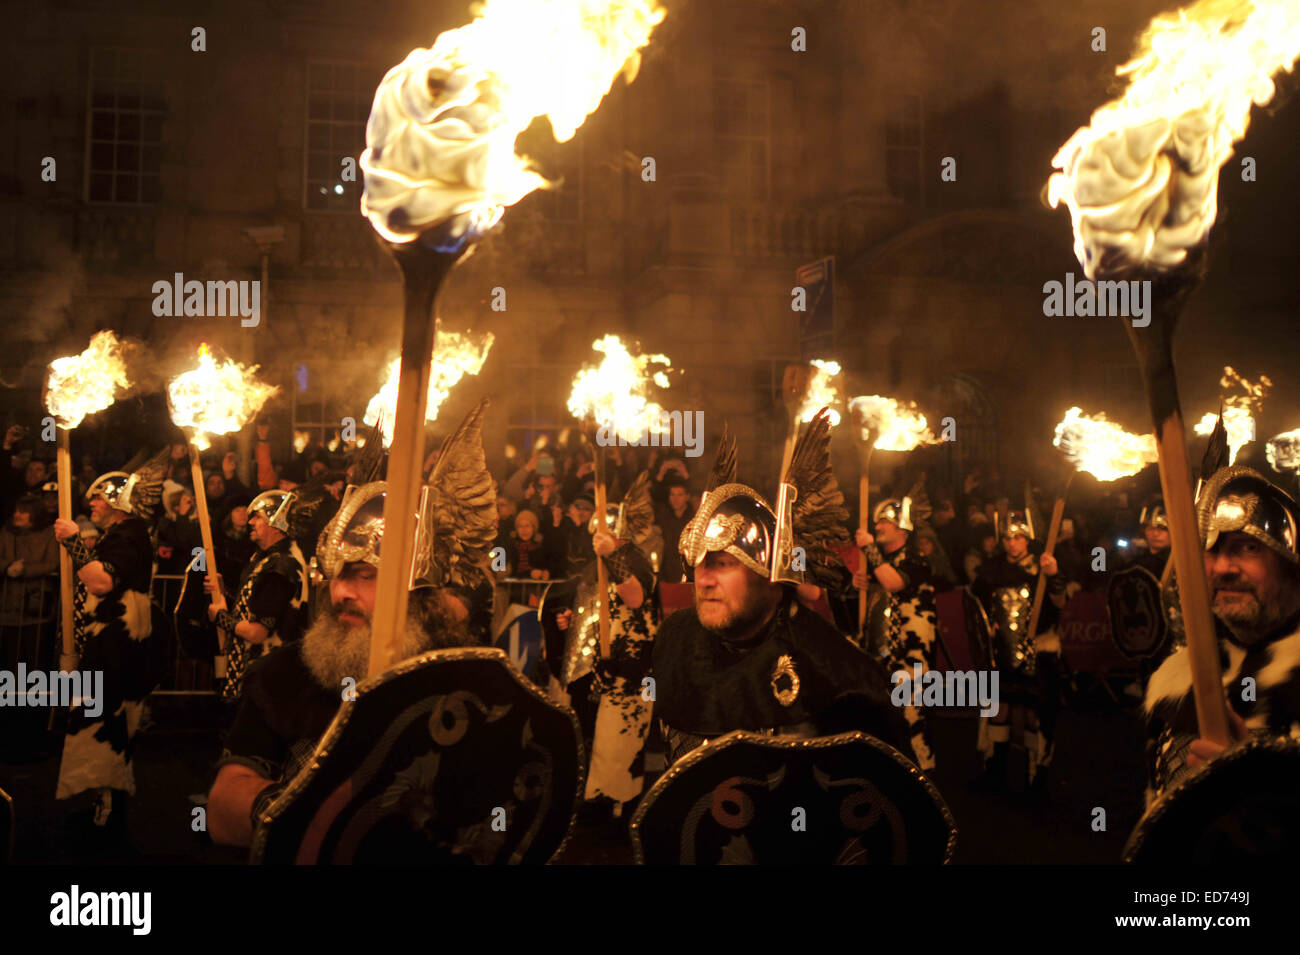 Edinburgh, UK. 30th December 2014. Thousands gather in the center of Edinburgh for the Hogmany Torchlight Procession - Stock Image